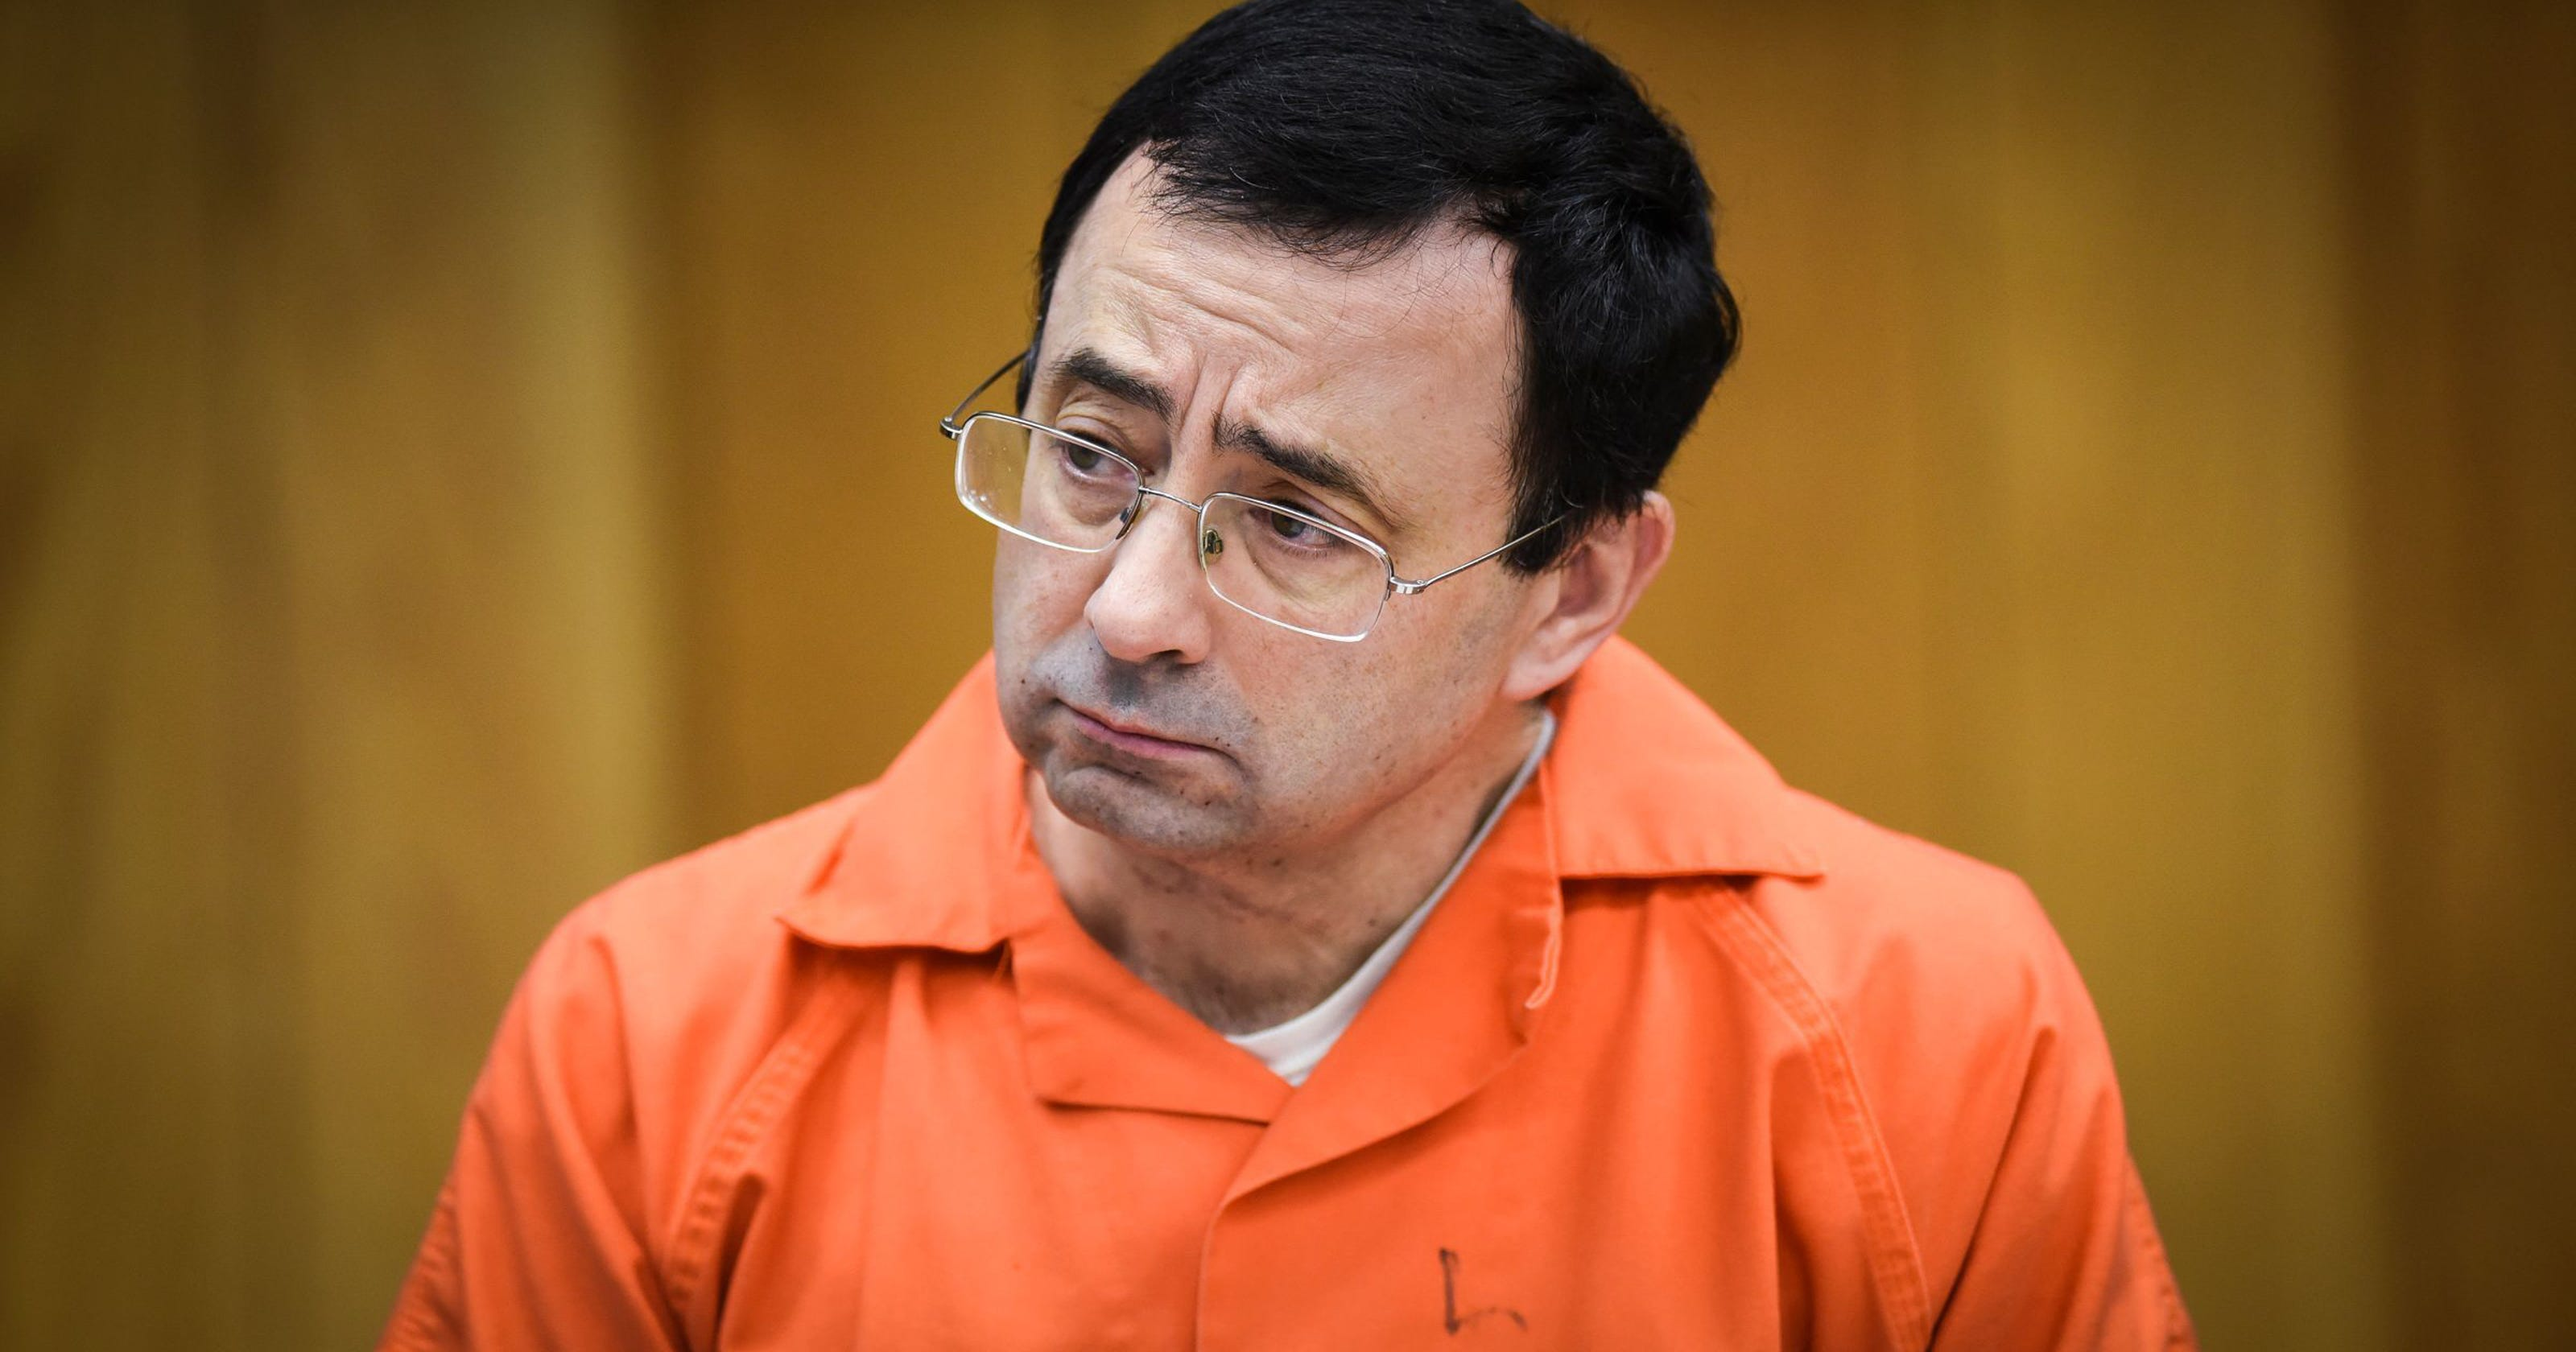 Michigan State to pay record $4.5 million fine in Larry Nassar sexual assault scandal